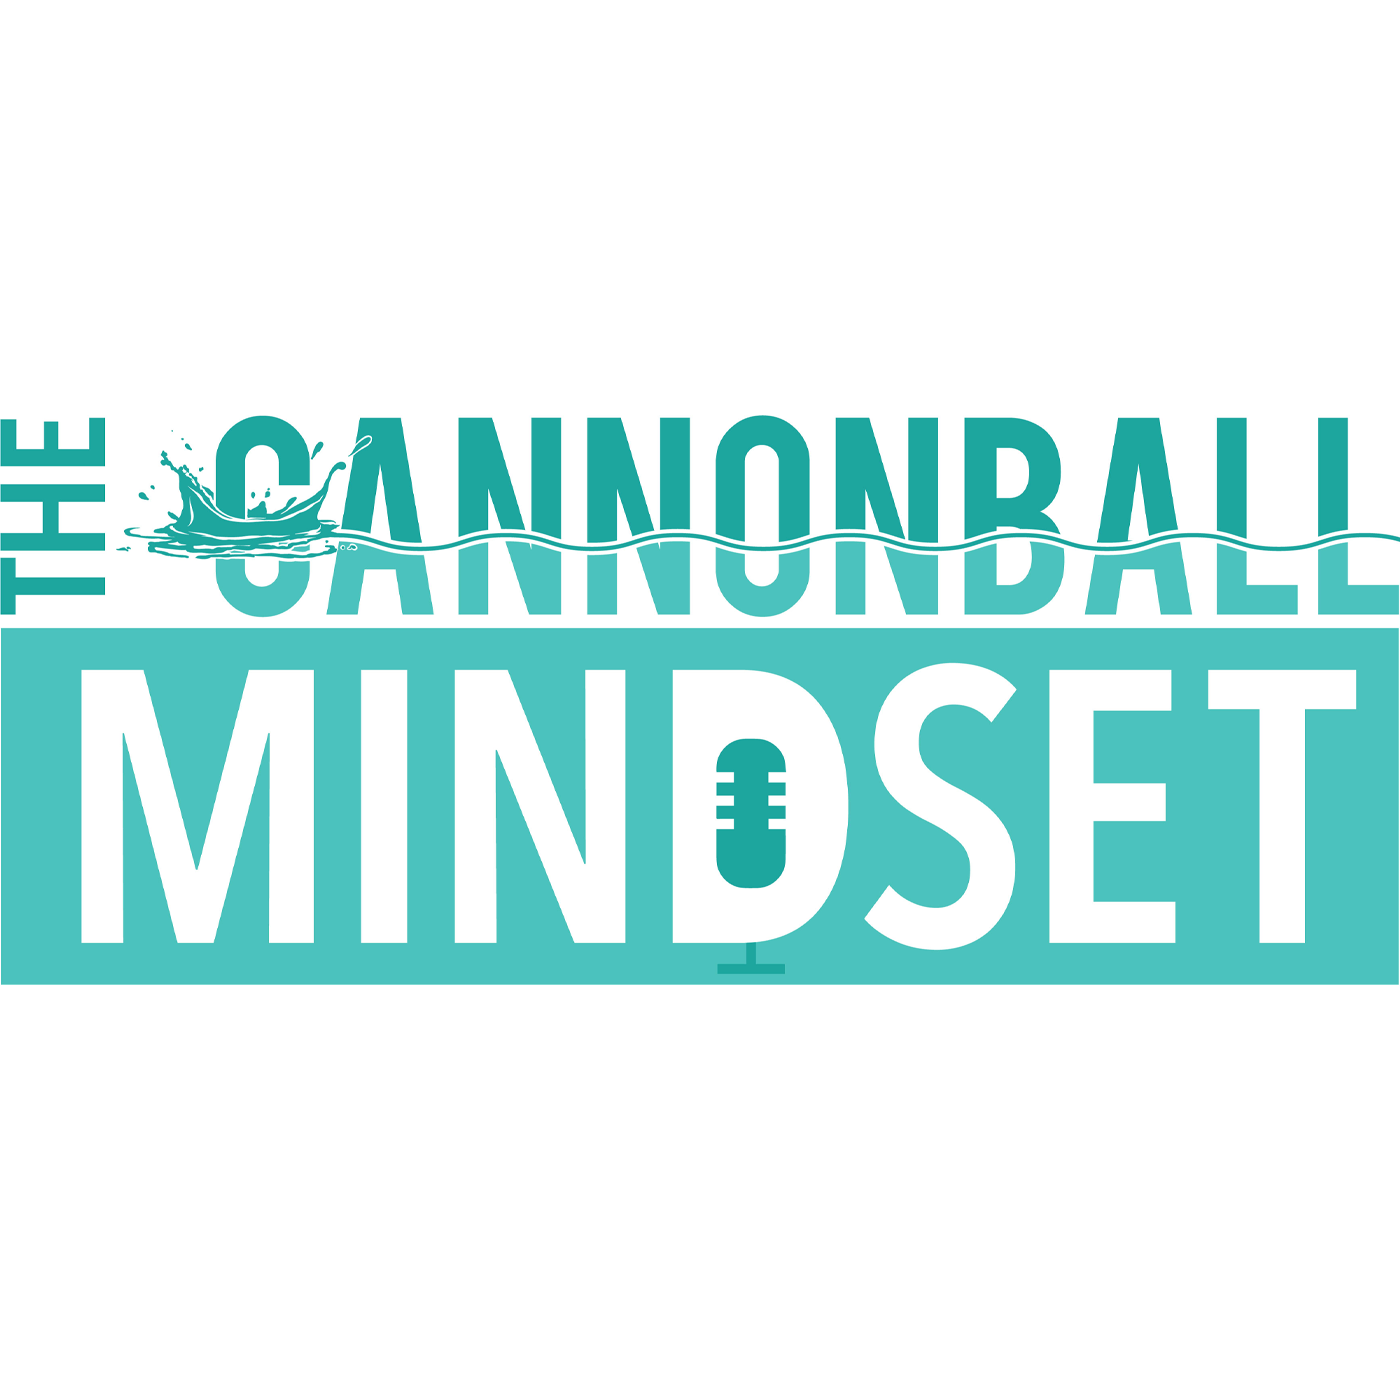 The Cannonball Mindset show art